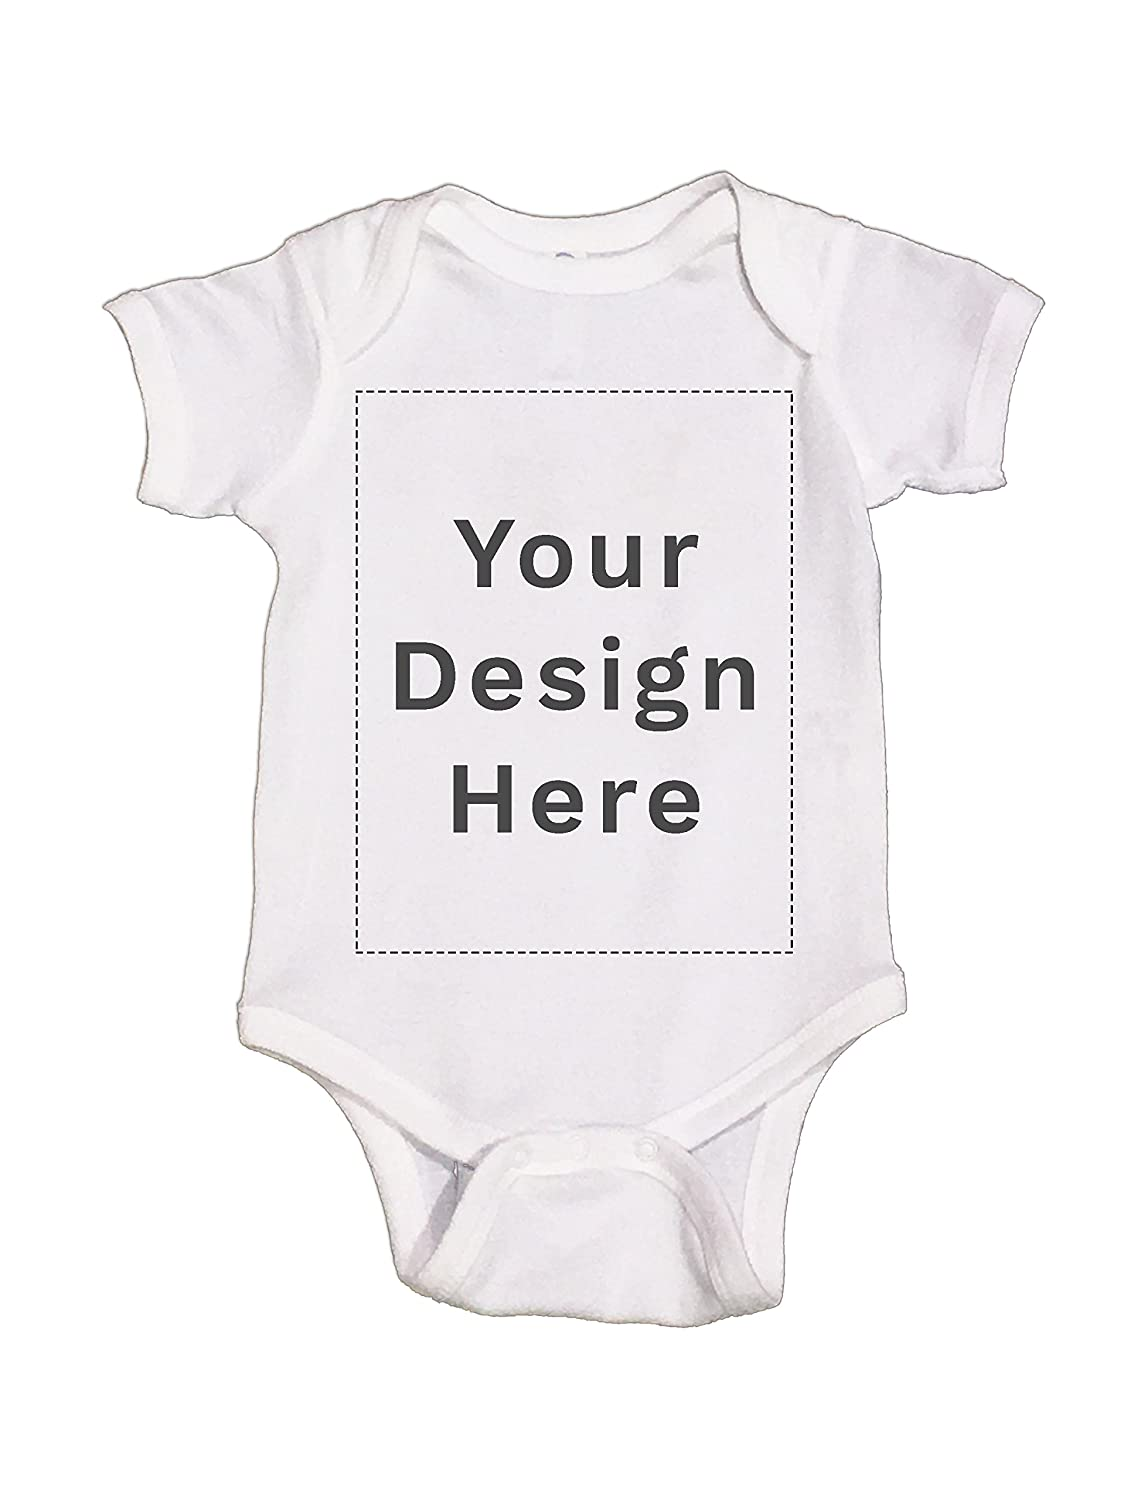 ffea5de6b16 PERSONALIZE A ONESIE by adding your custom design. Select size then  customize! Message us if you have questions about your design or any  special requests